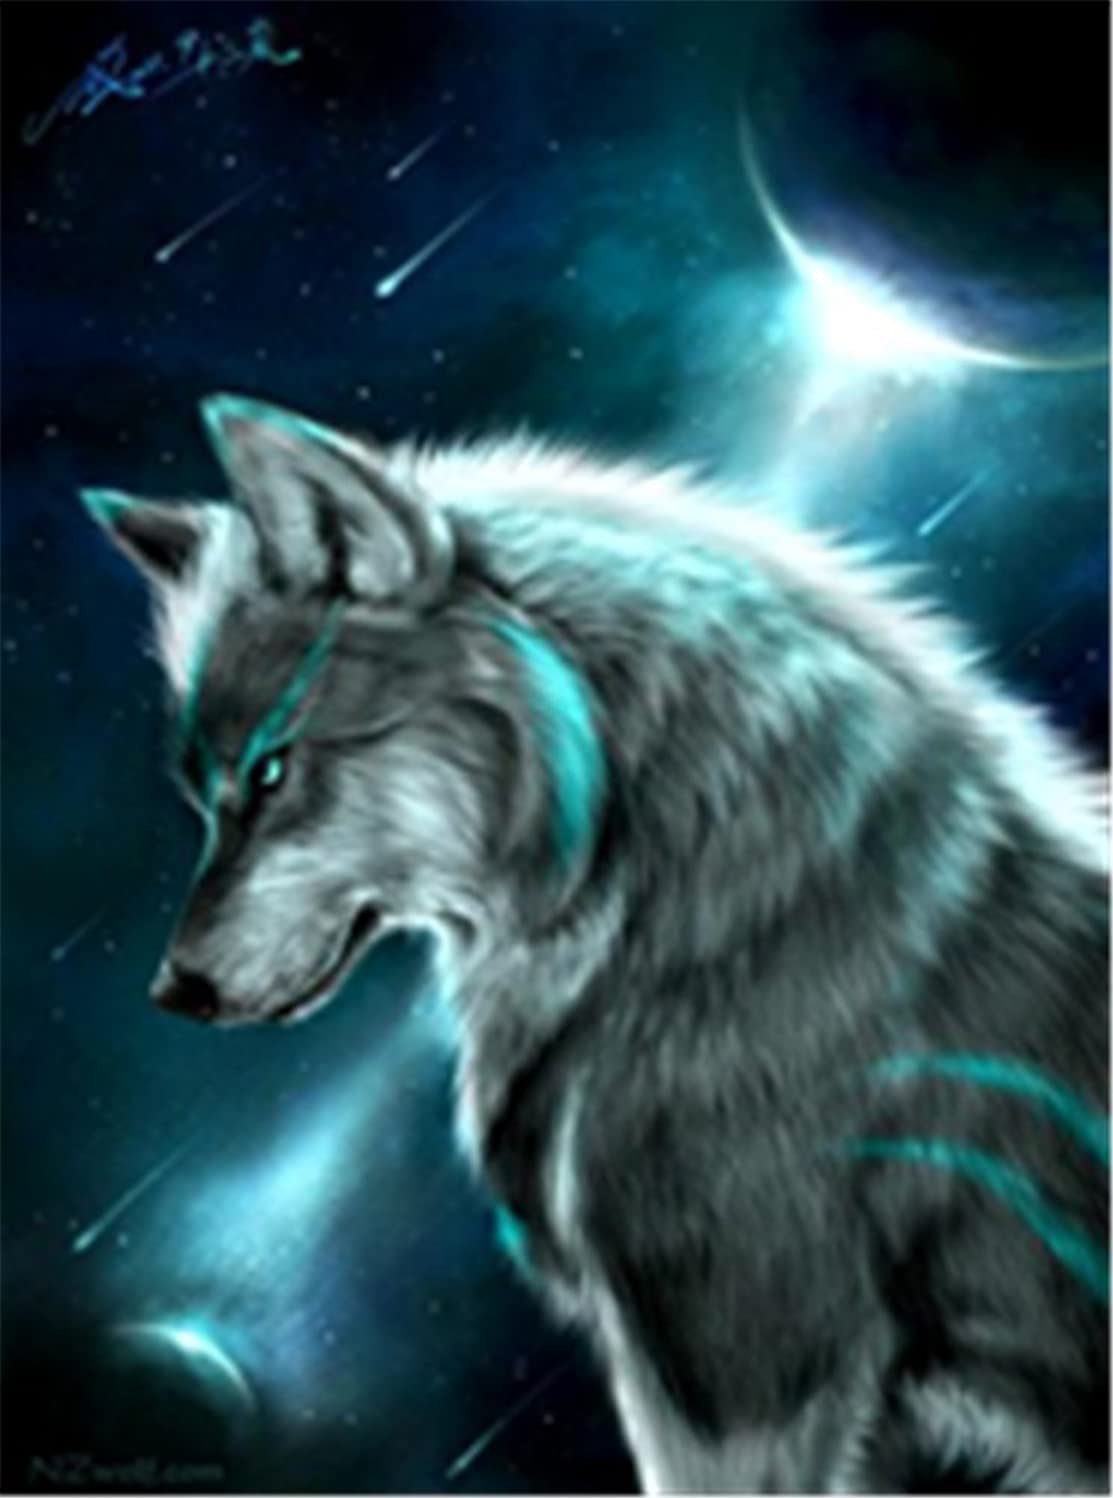 TianMaiGeLun New DIY 5D Diamond Painting Kits Diamond Embroidery Art Painting Pasted Paint By Number Kits Stitch Craft Kit Home Decor Wall Sticker - Moon Wolf, 25x35cm